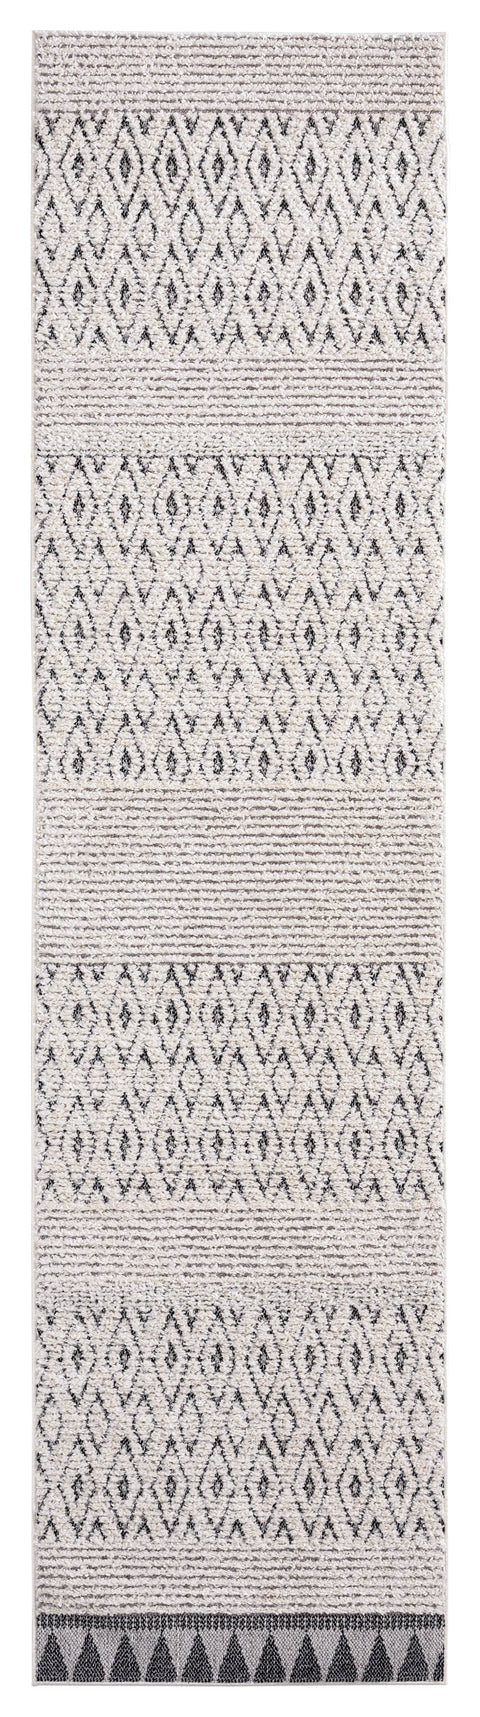 Talia Ivory Black Tribal Textured Runner Rug